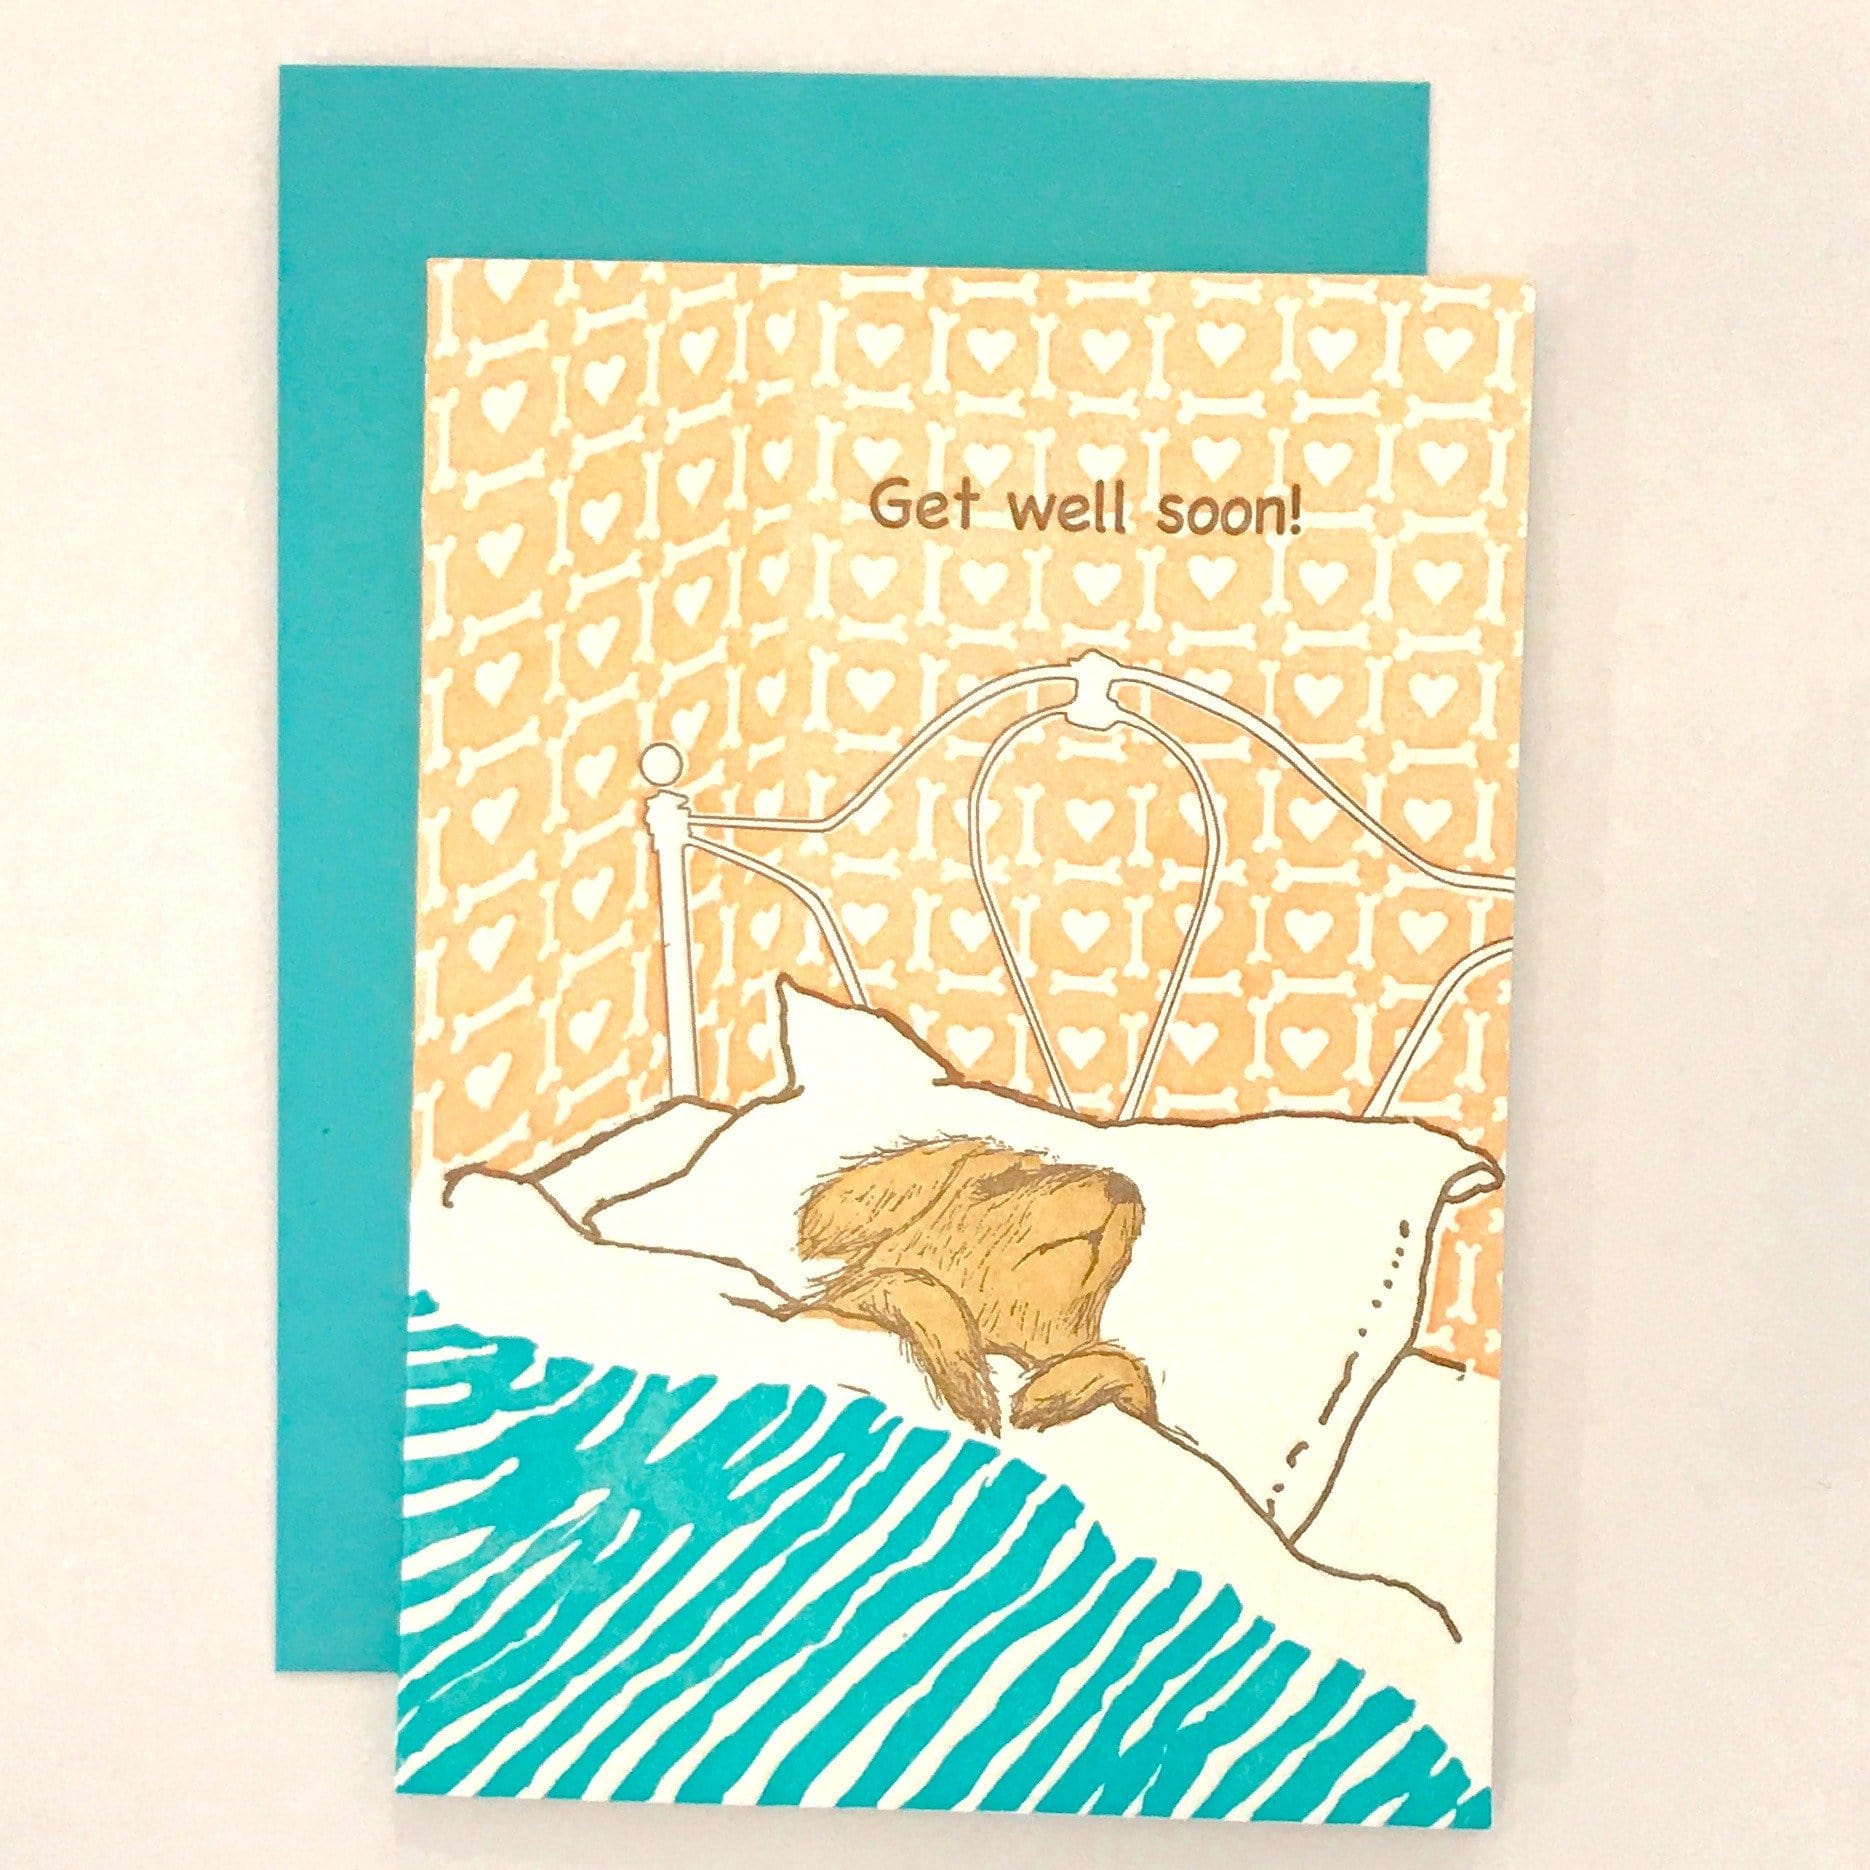 Get Well Soon Dog in Bed Letterpress Card